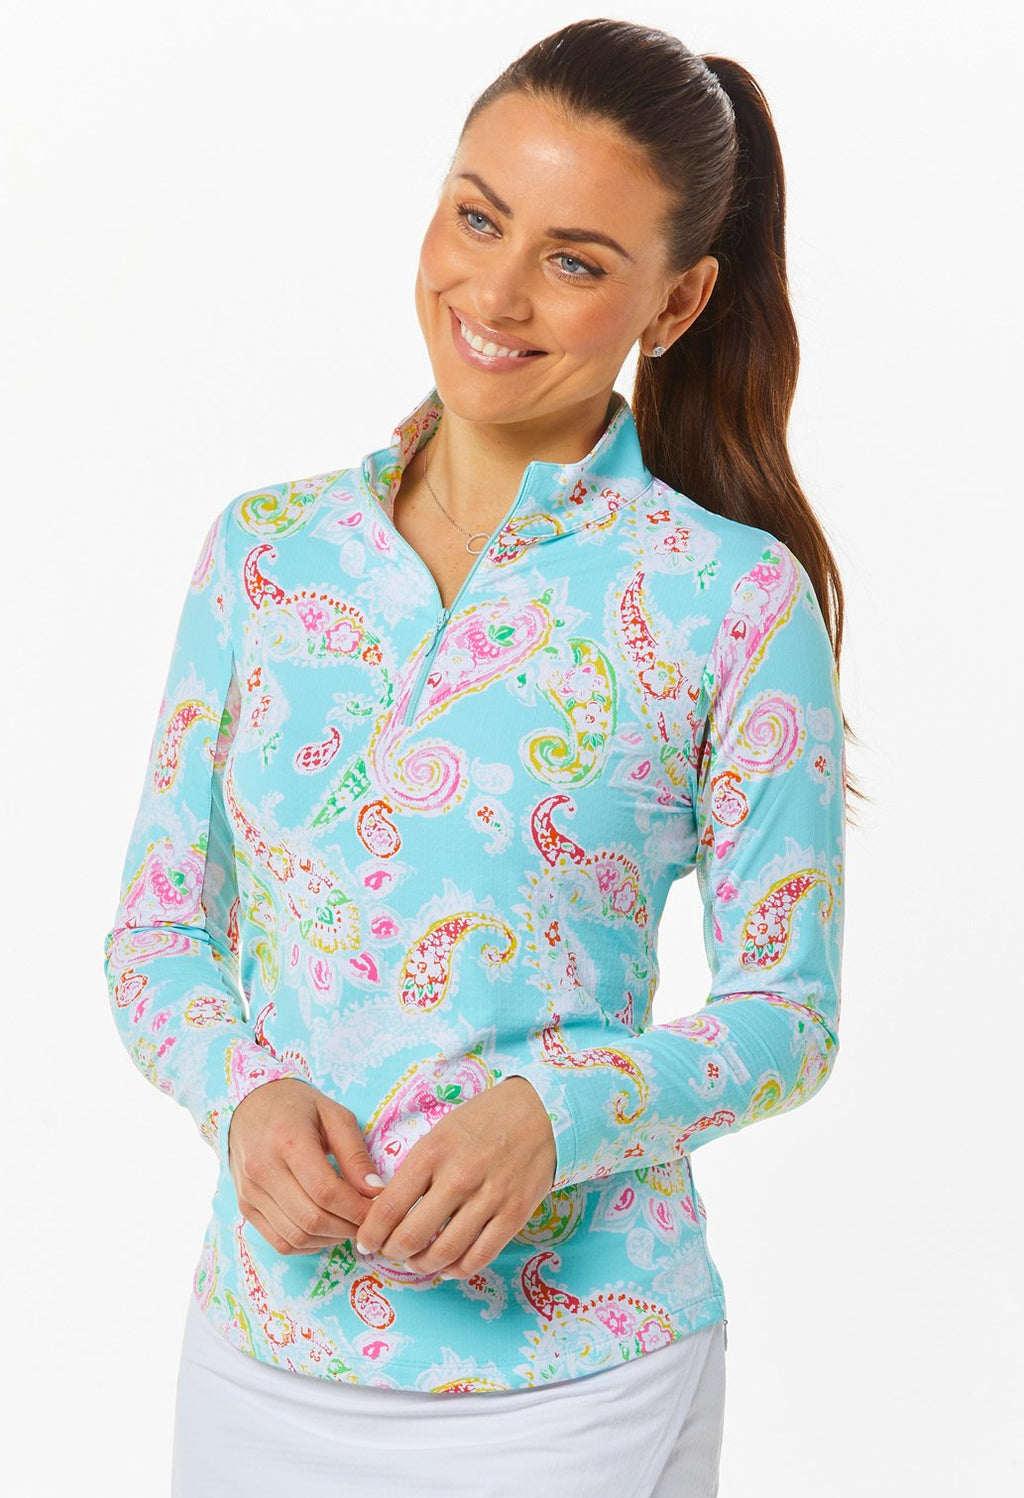 Ibkul Long Sleeve Mock: Sharon Seafoam Print | SPF 50